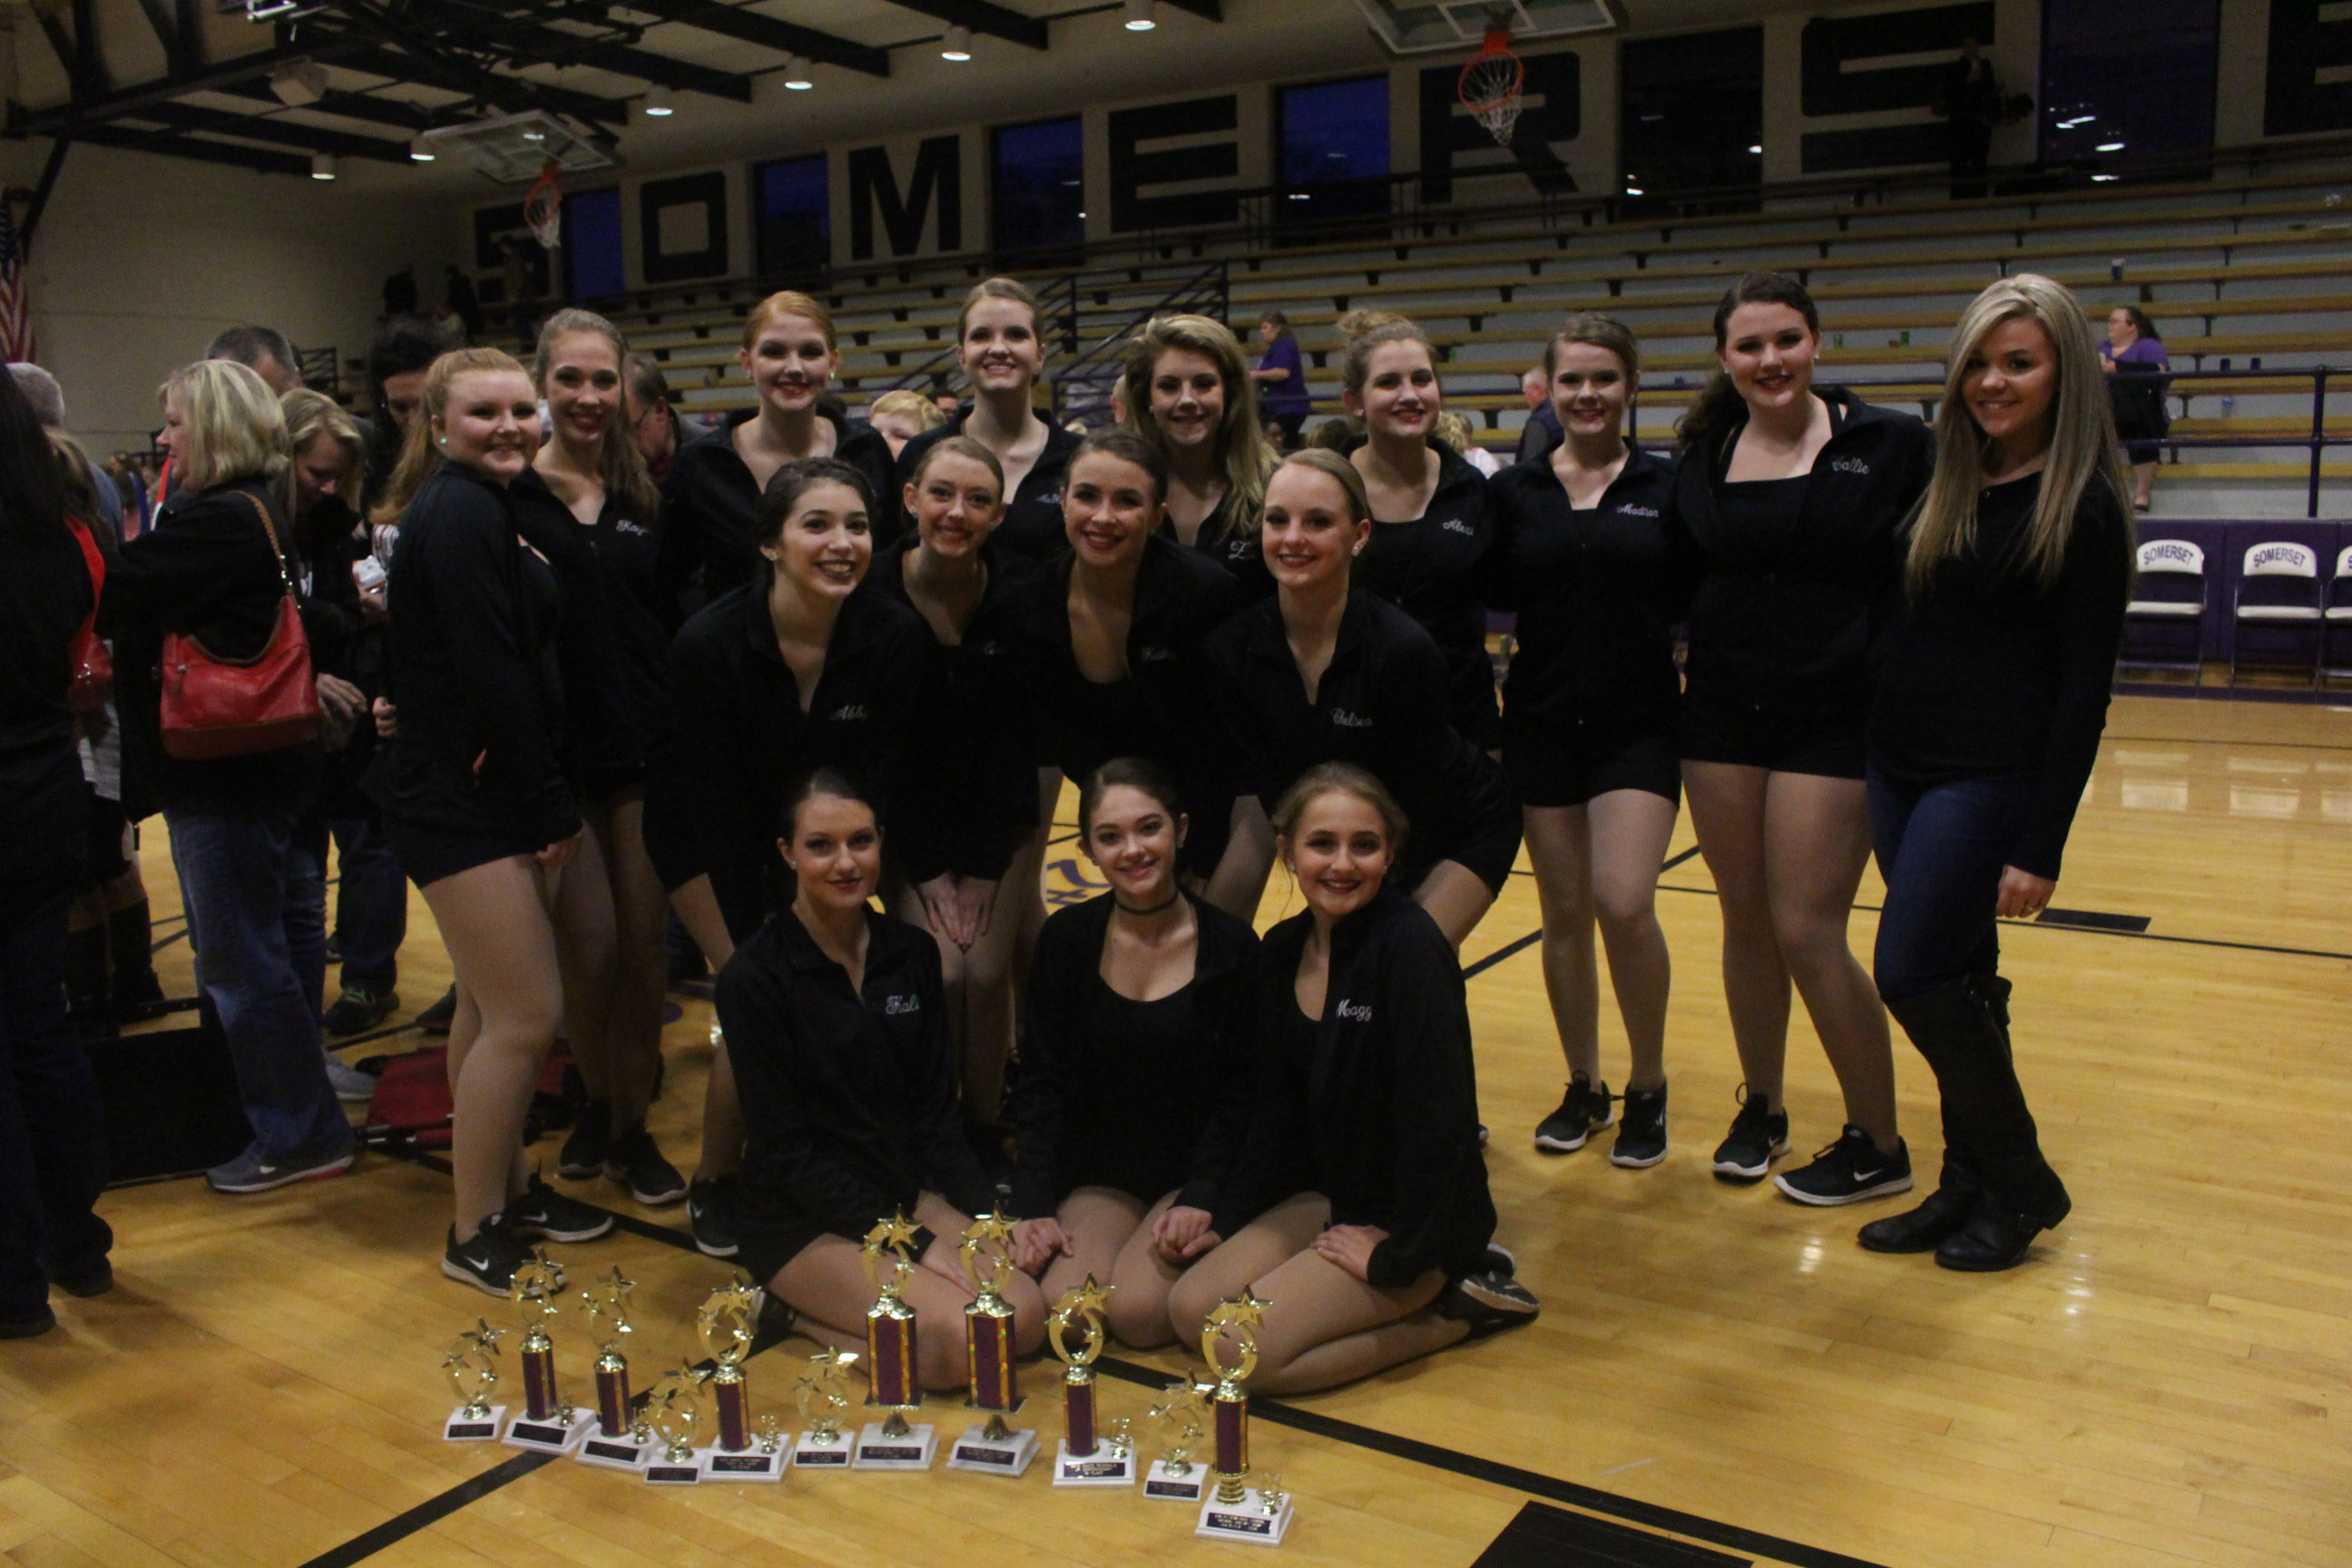 WCHS Dance Team with trophies